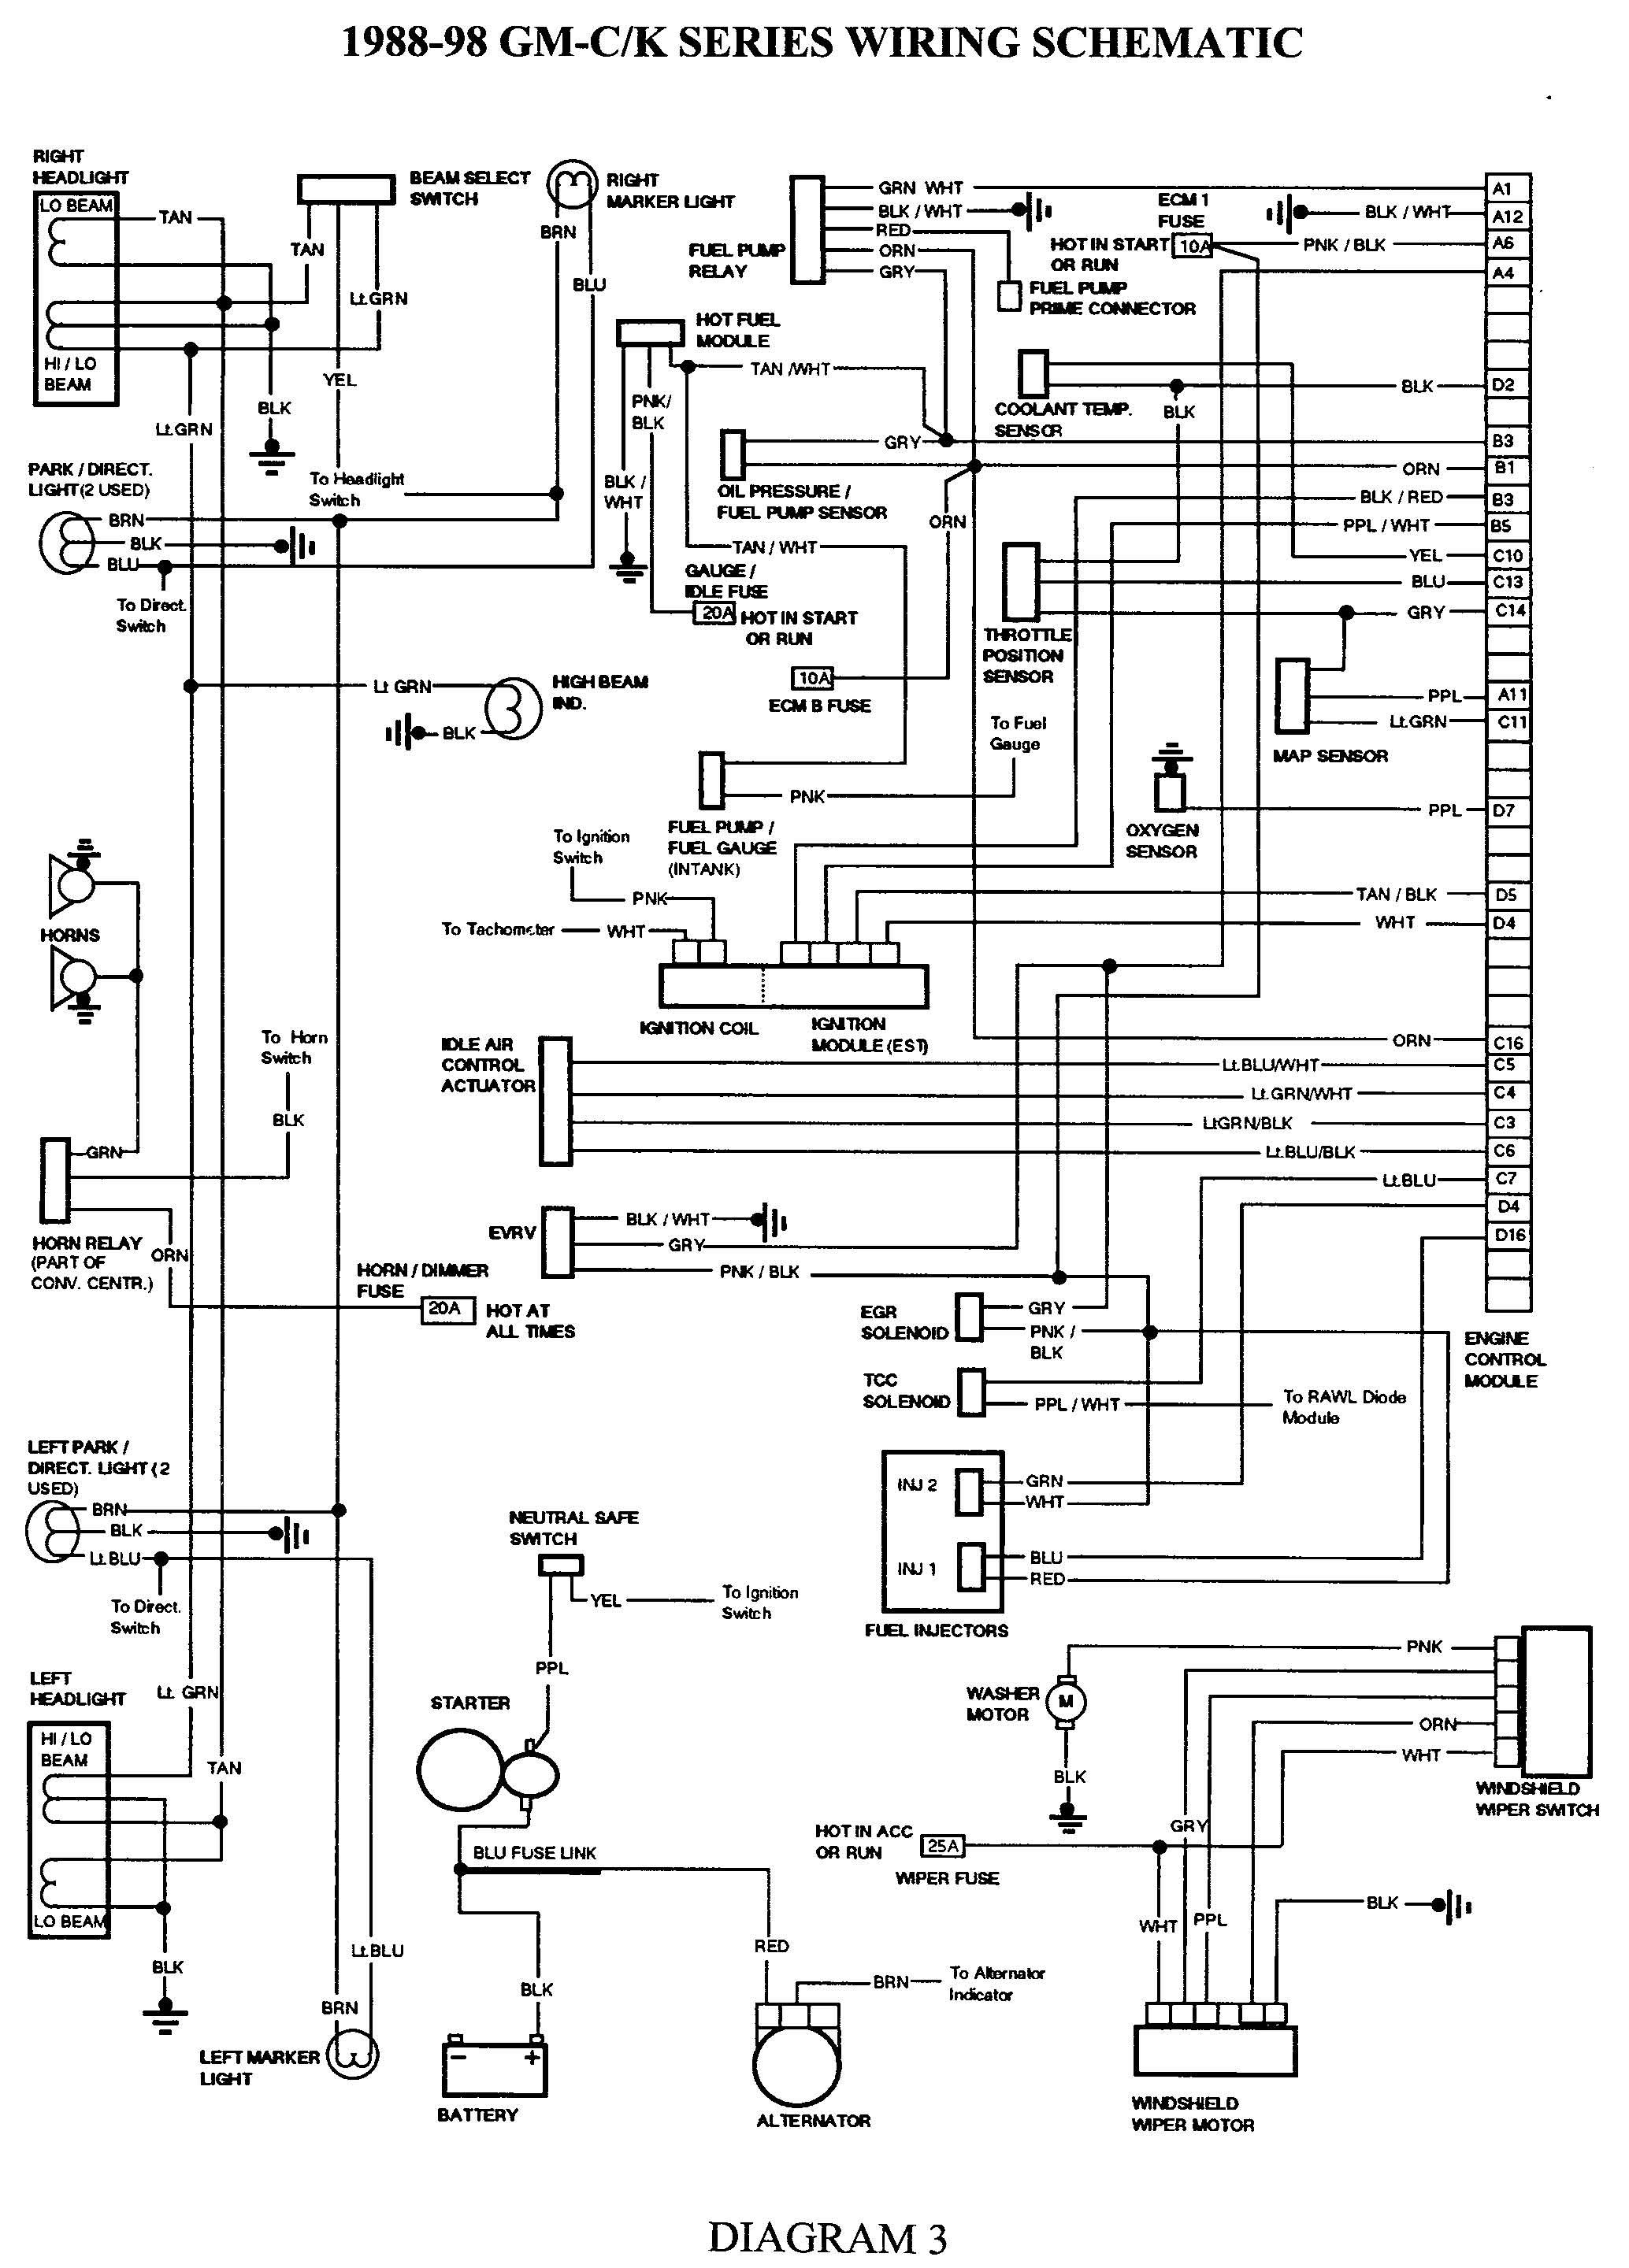 chevy silverado truck wiring diagram wiring diagram third level 2010 chevy silverado parts diagram 2007 chevy silverado transmission diagram [ 2068 x 2880 Pixel ]